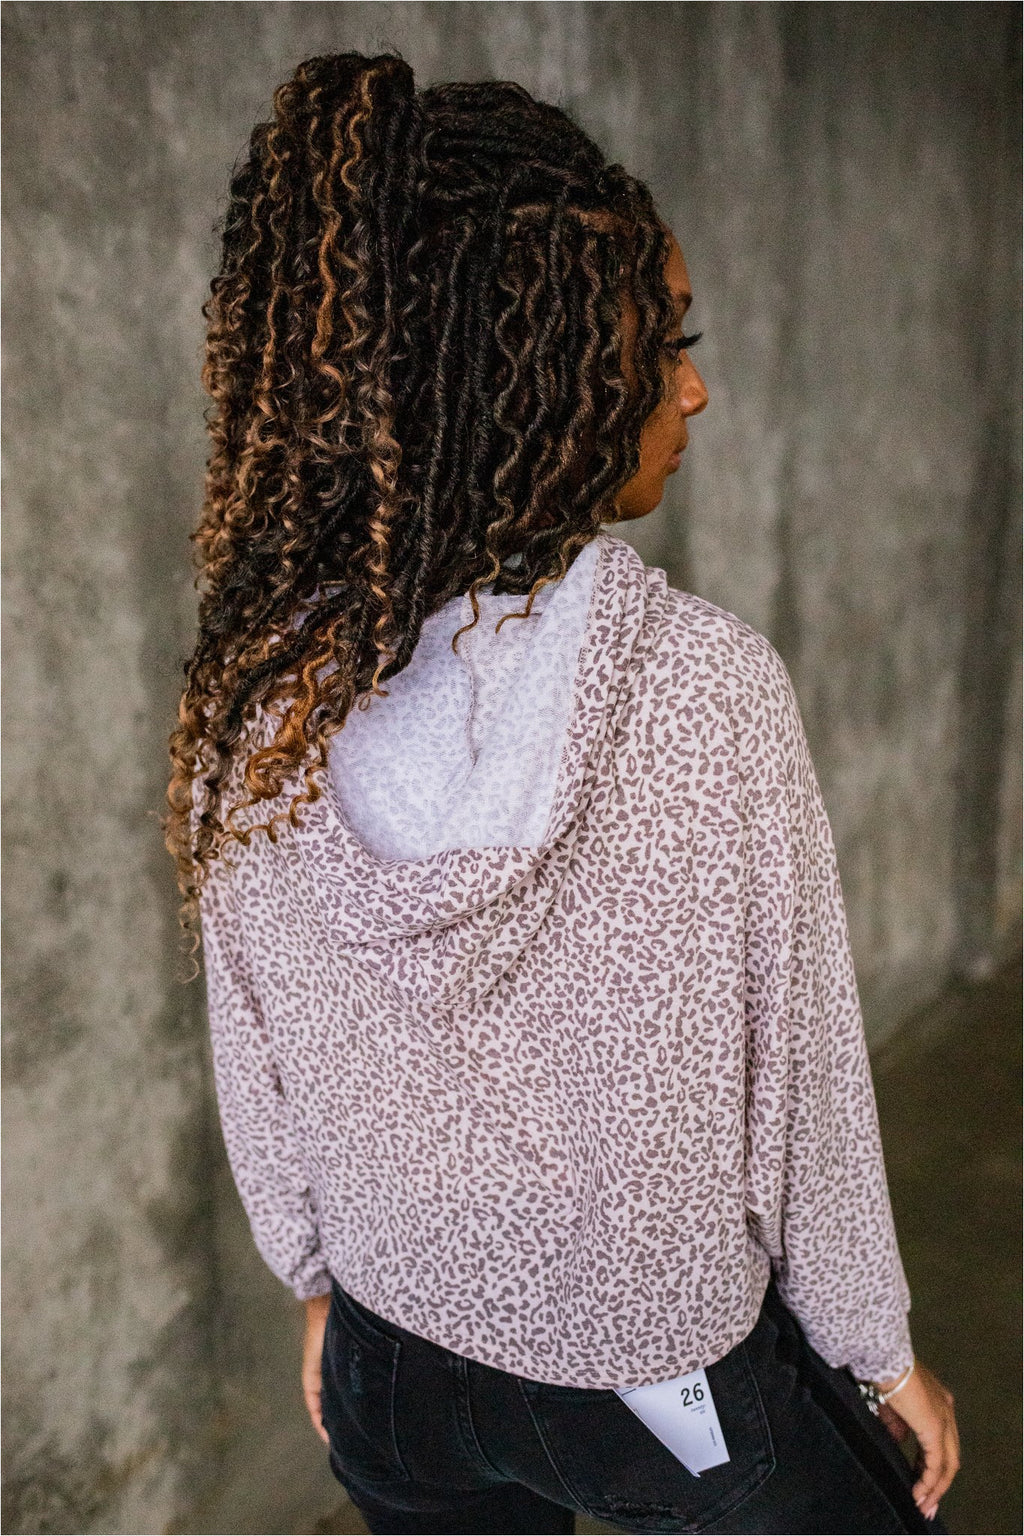 Taupe Leopard Cropped Terry Hooded Top - BluePeppermint Boutique